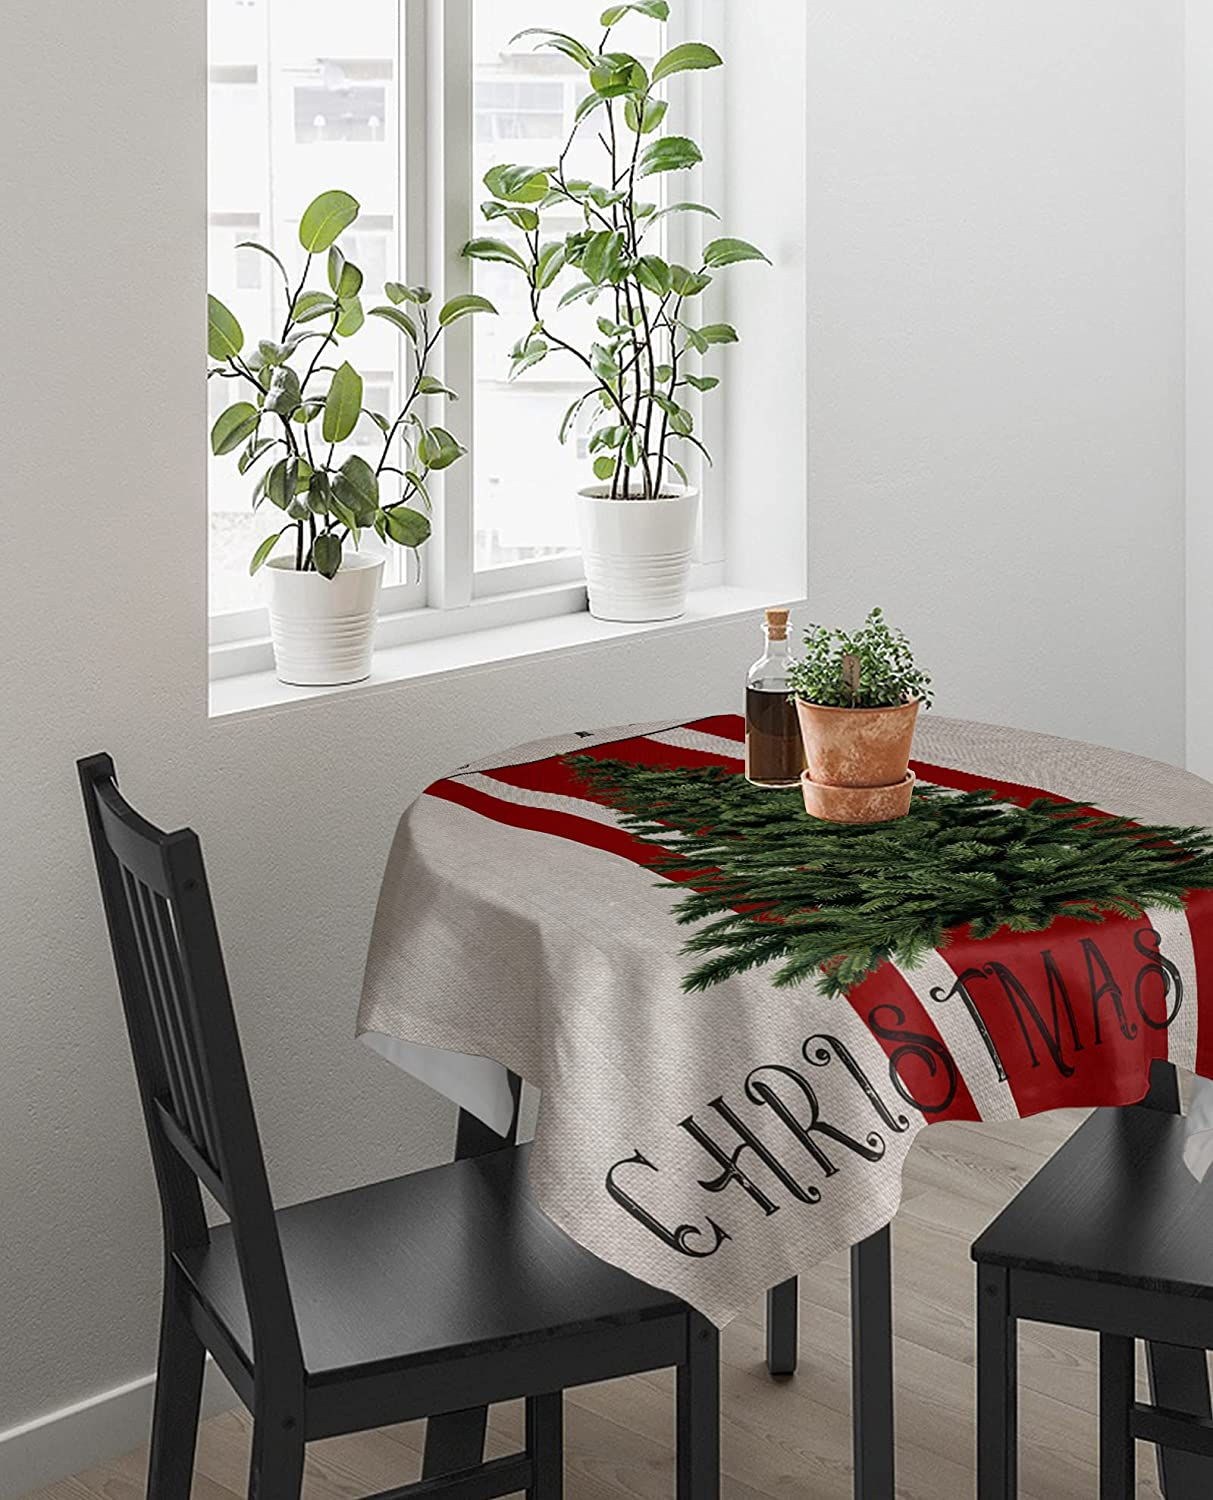 OUR WINGS price Tablecloth Washable Table Kitchen Ta for Max 60% OFF Dinning Cover